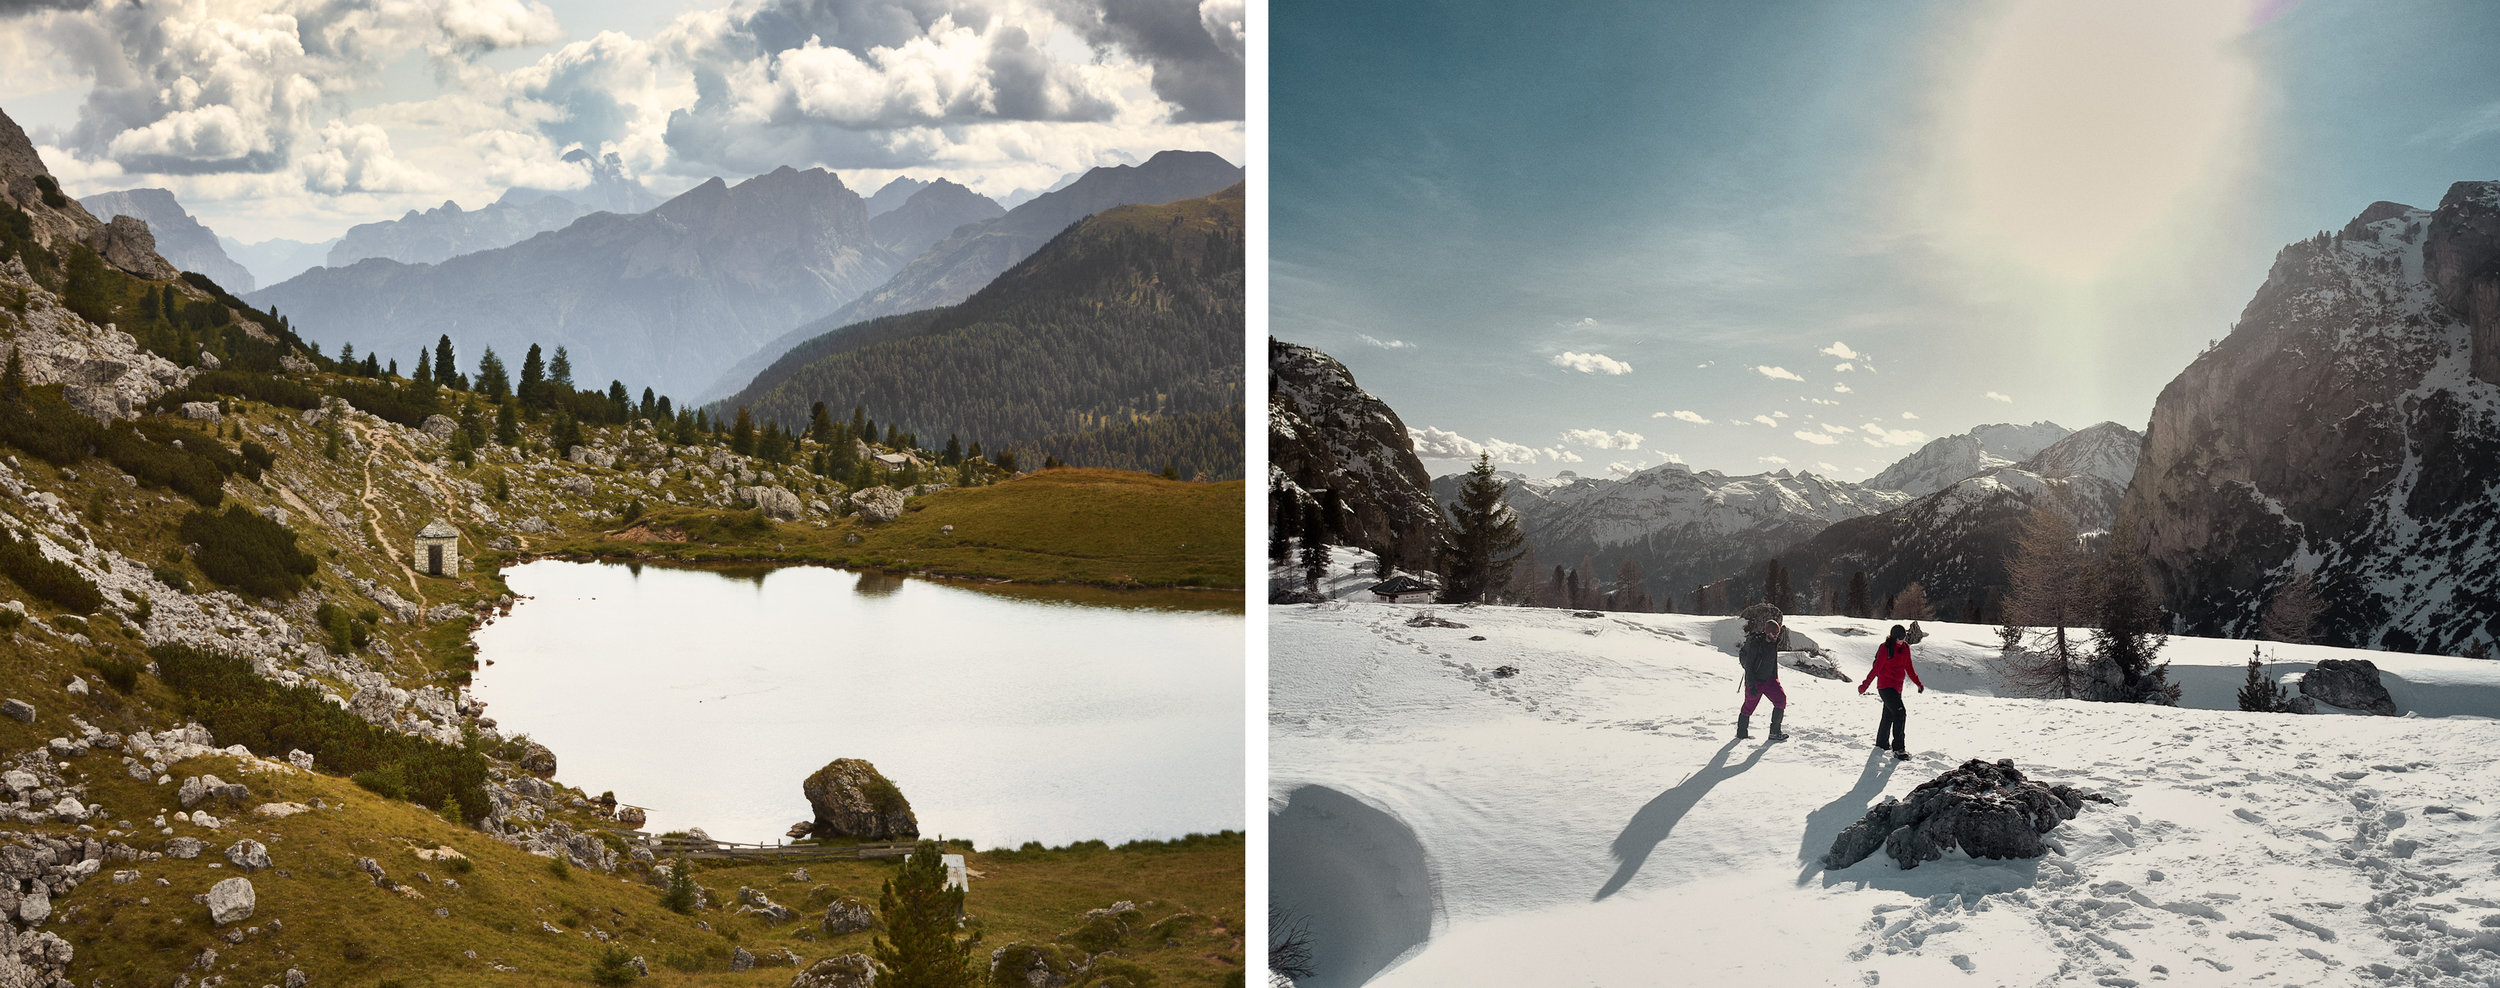 Lago di Val Parola in summer and the more challenging (but fun) winter hiking in the area